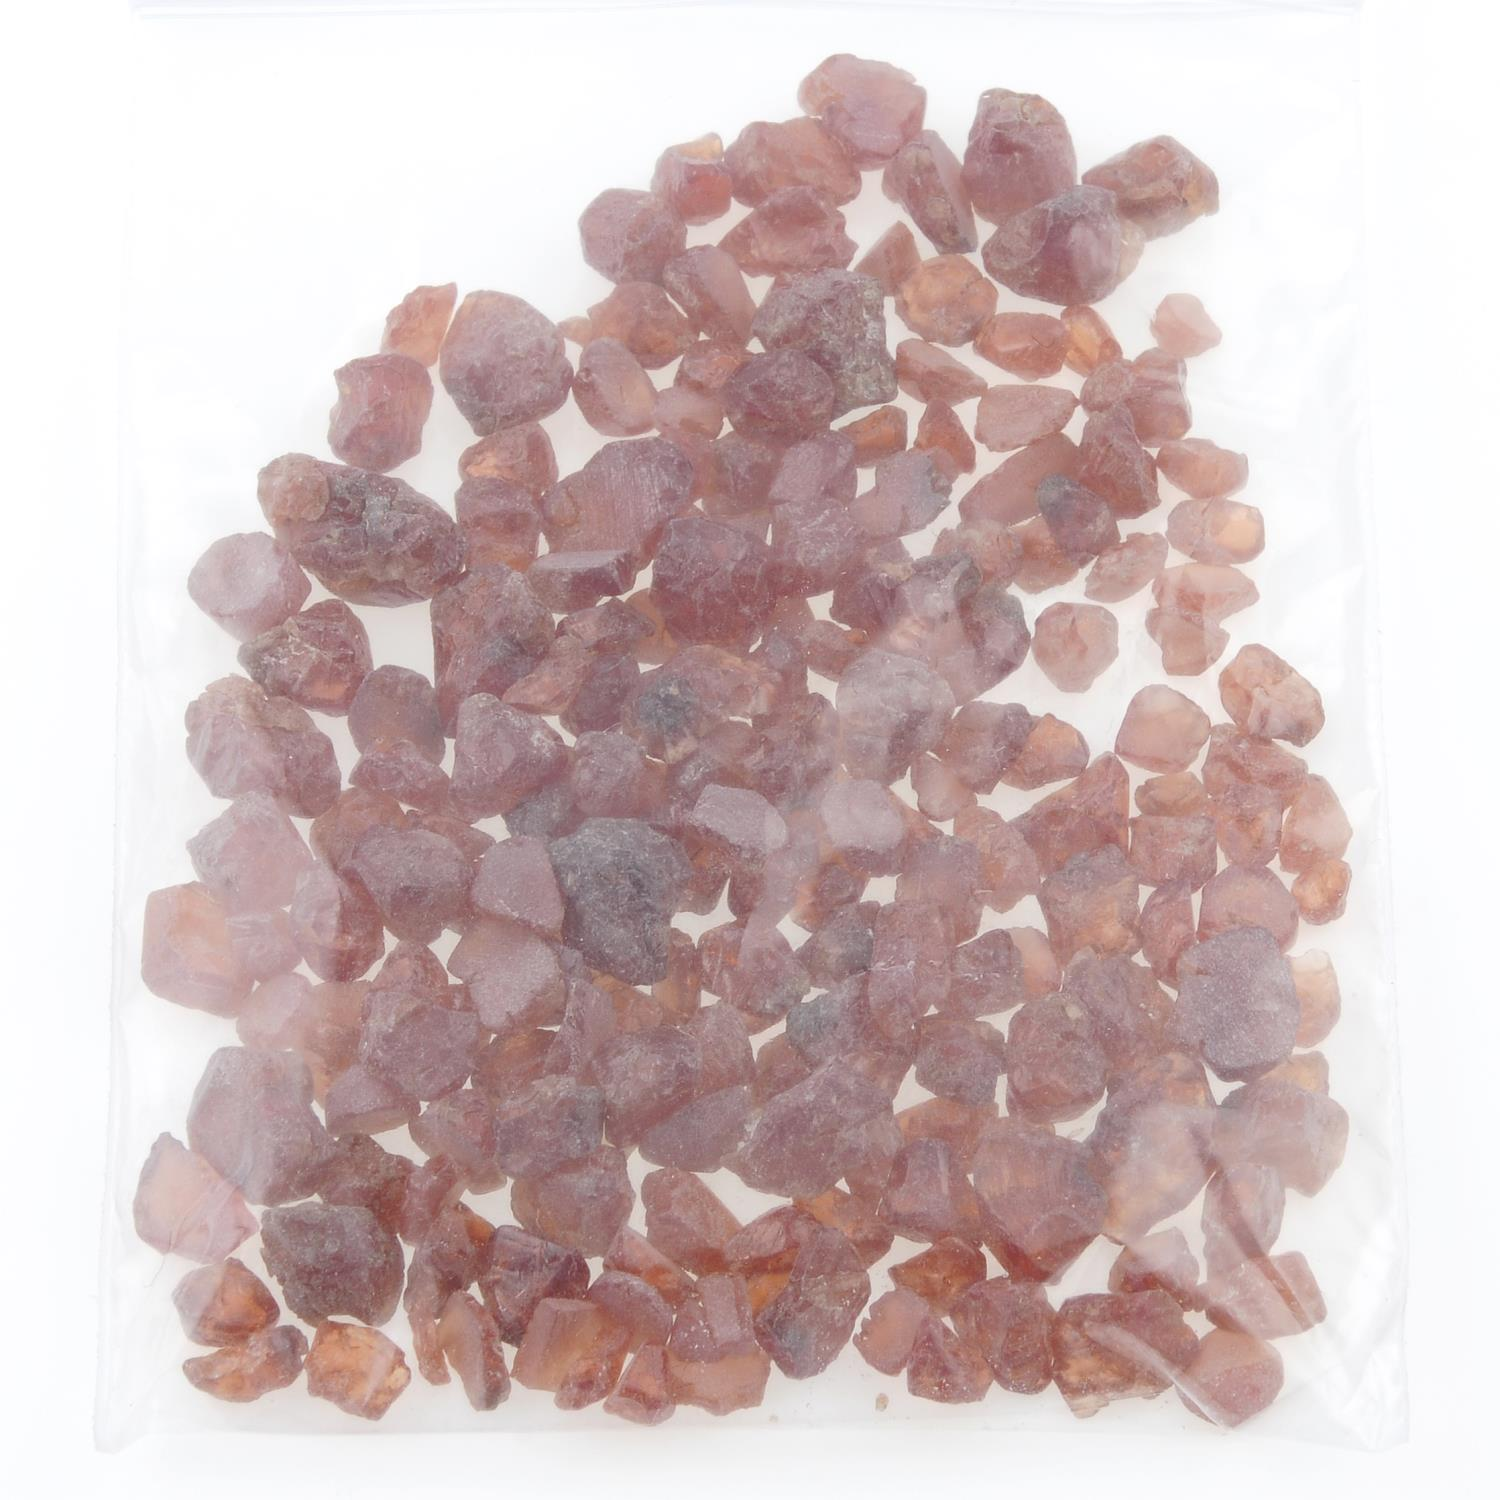 A selection of rough hessonite garnet. - Image 2 of 2